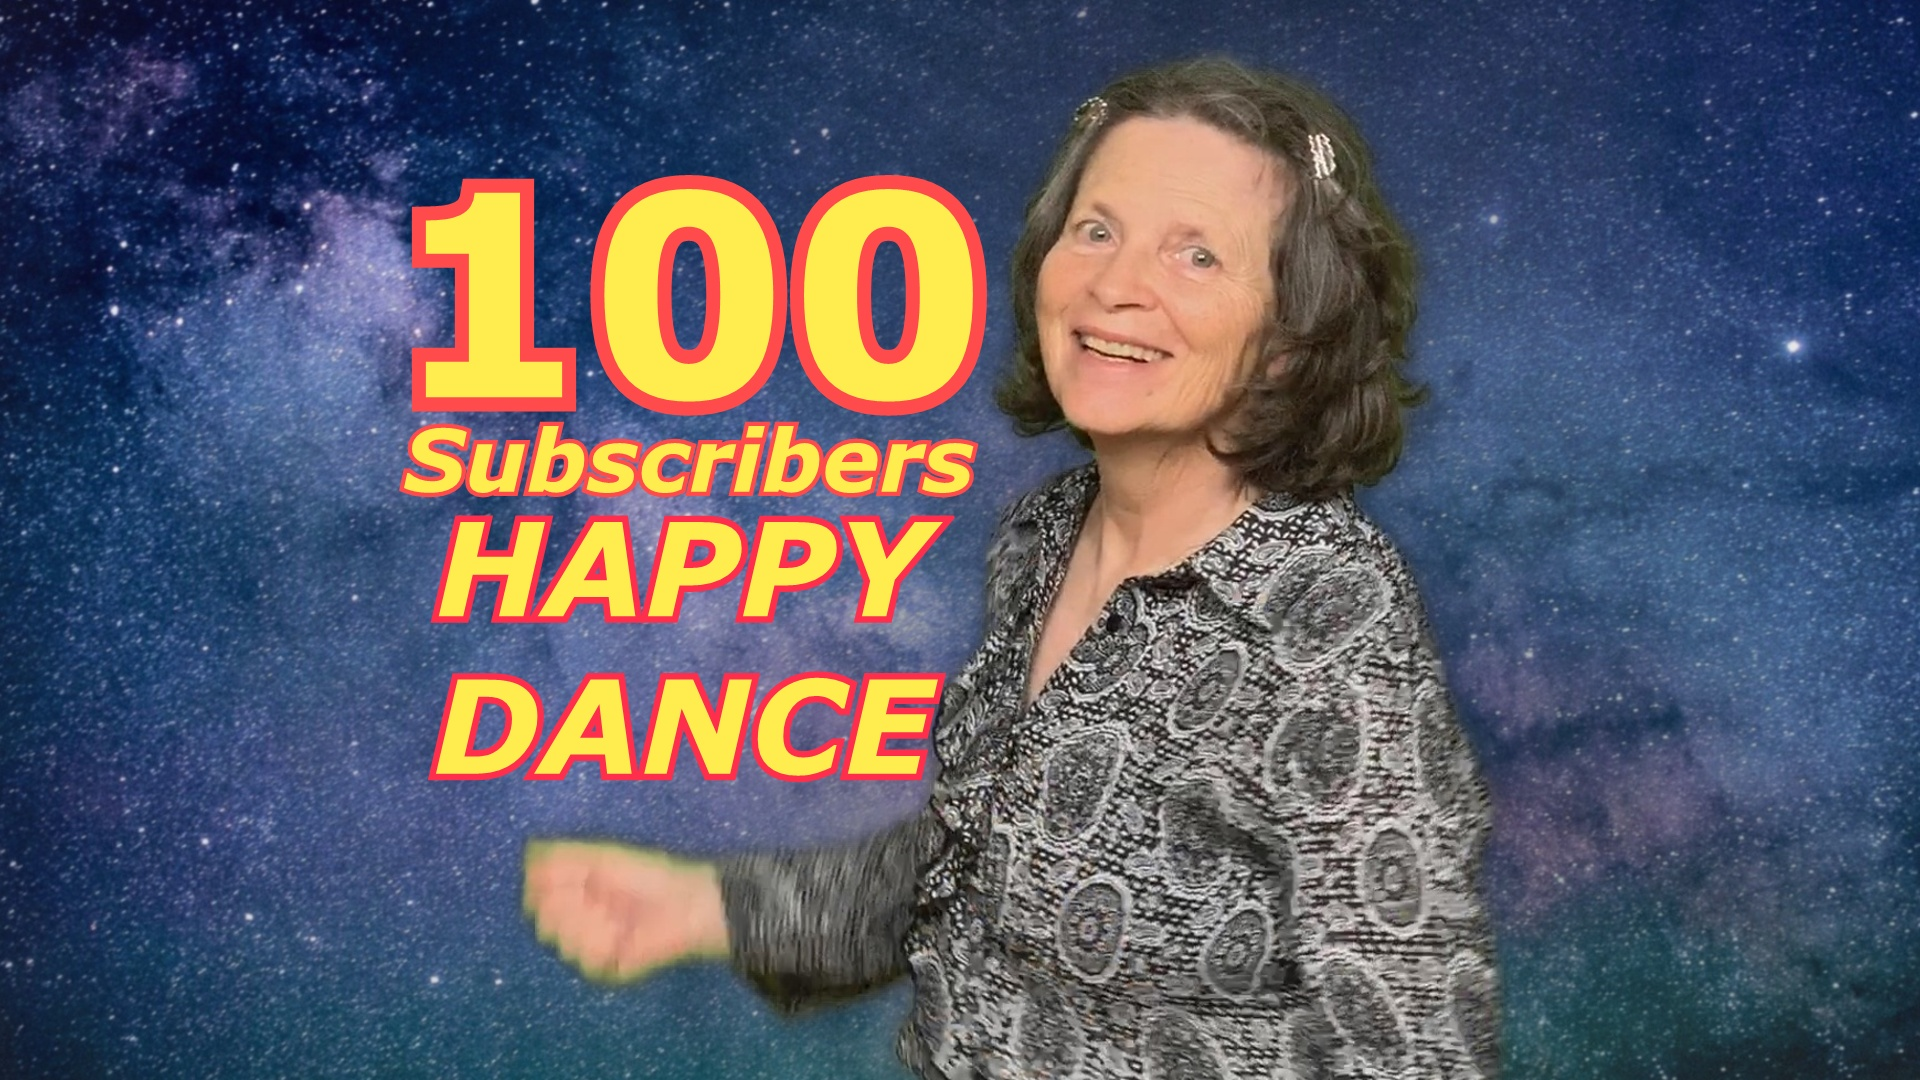 100 Subscriber Happy Dance - YouTube